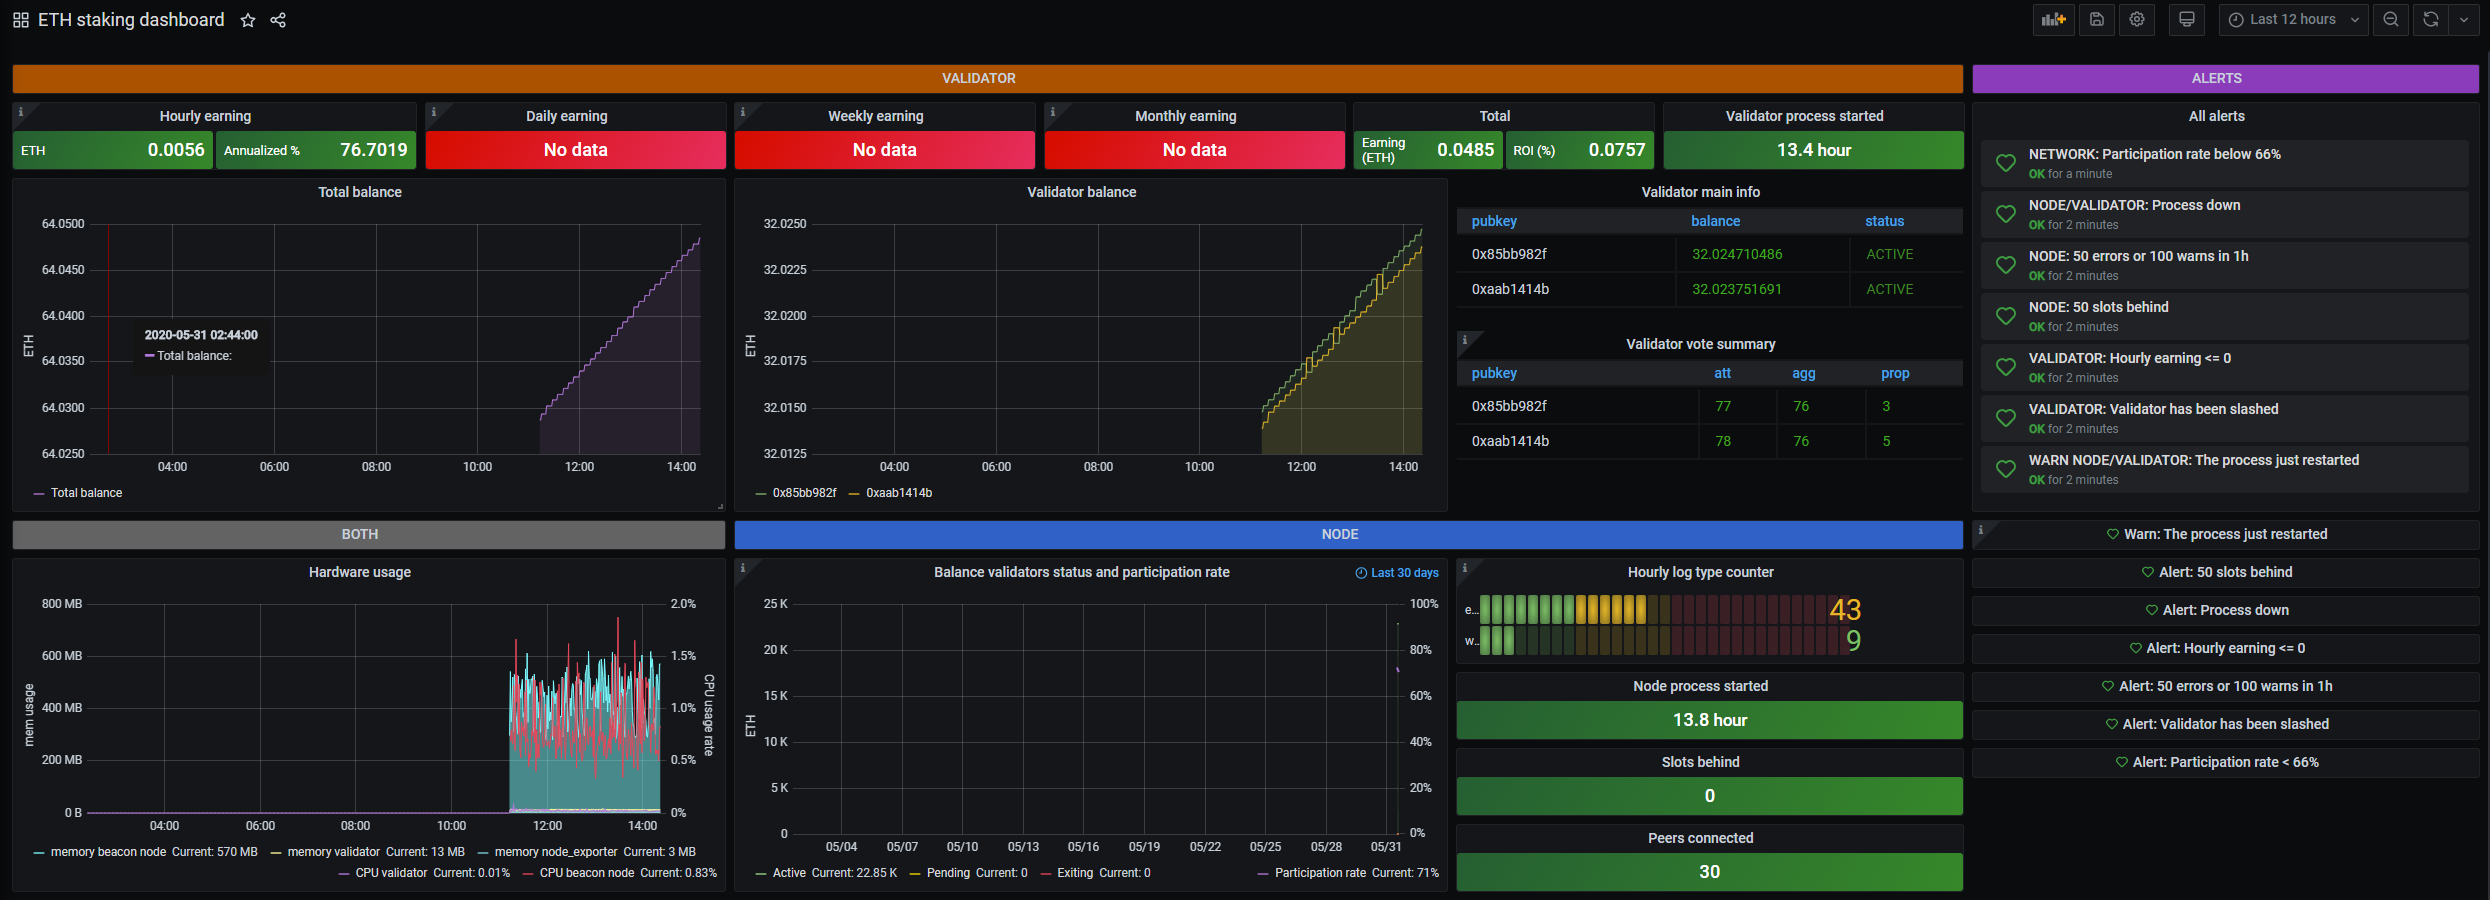 Ethereum staking dashboard in Grafana.